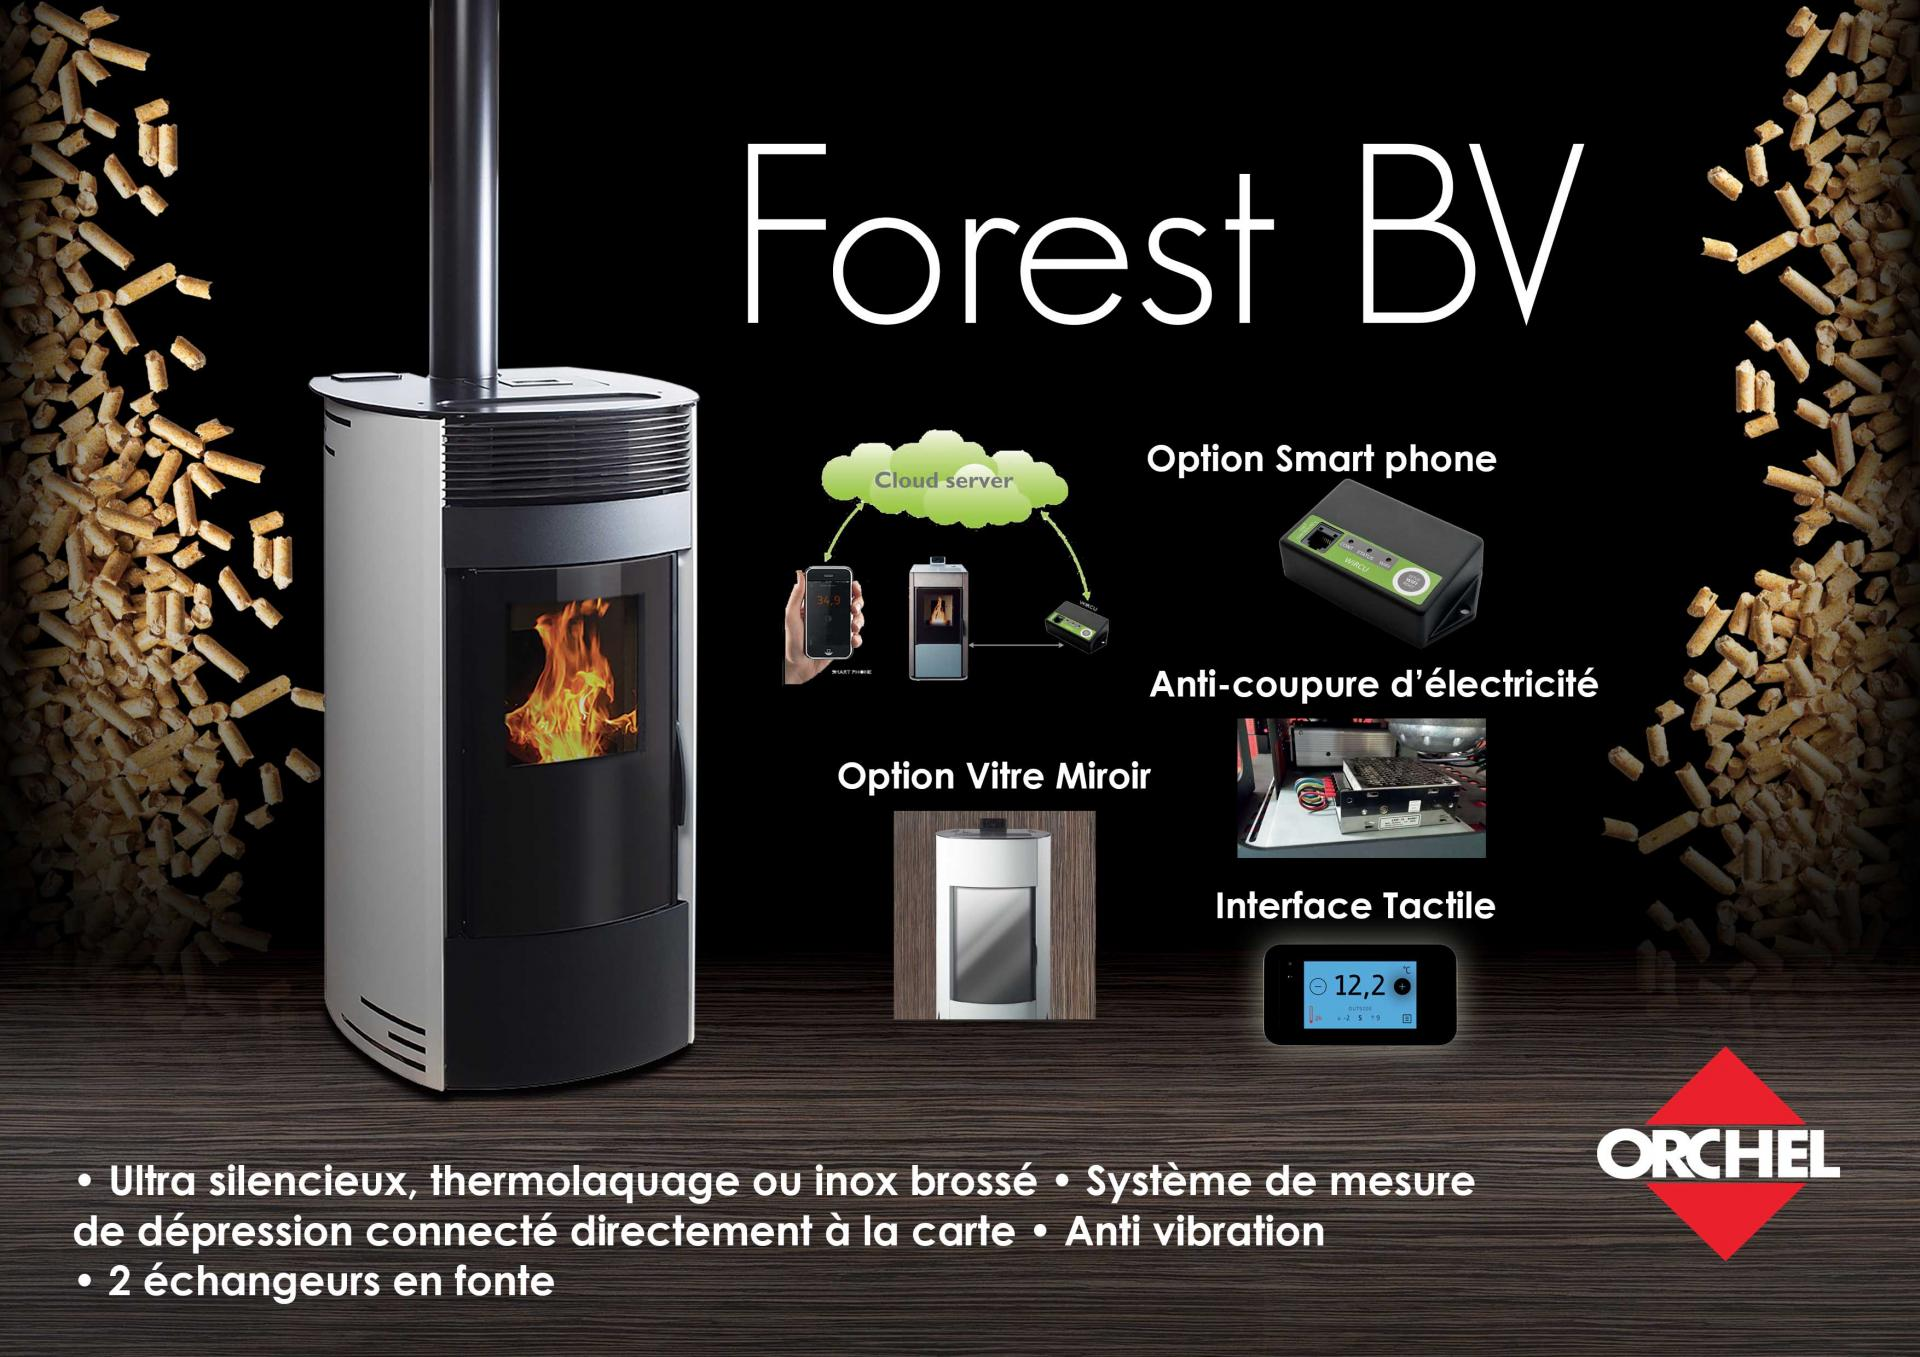 5 forest bv 1